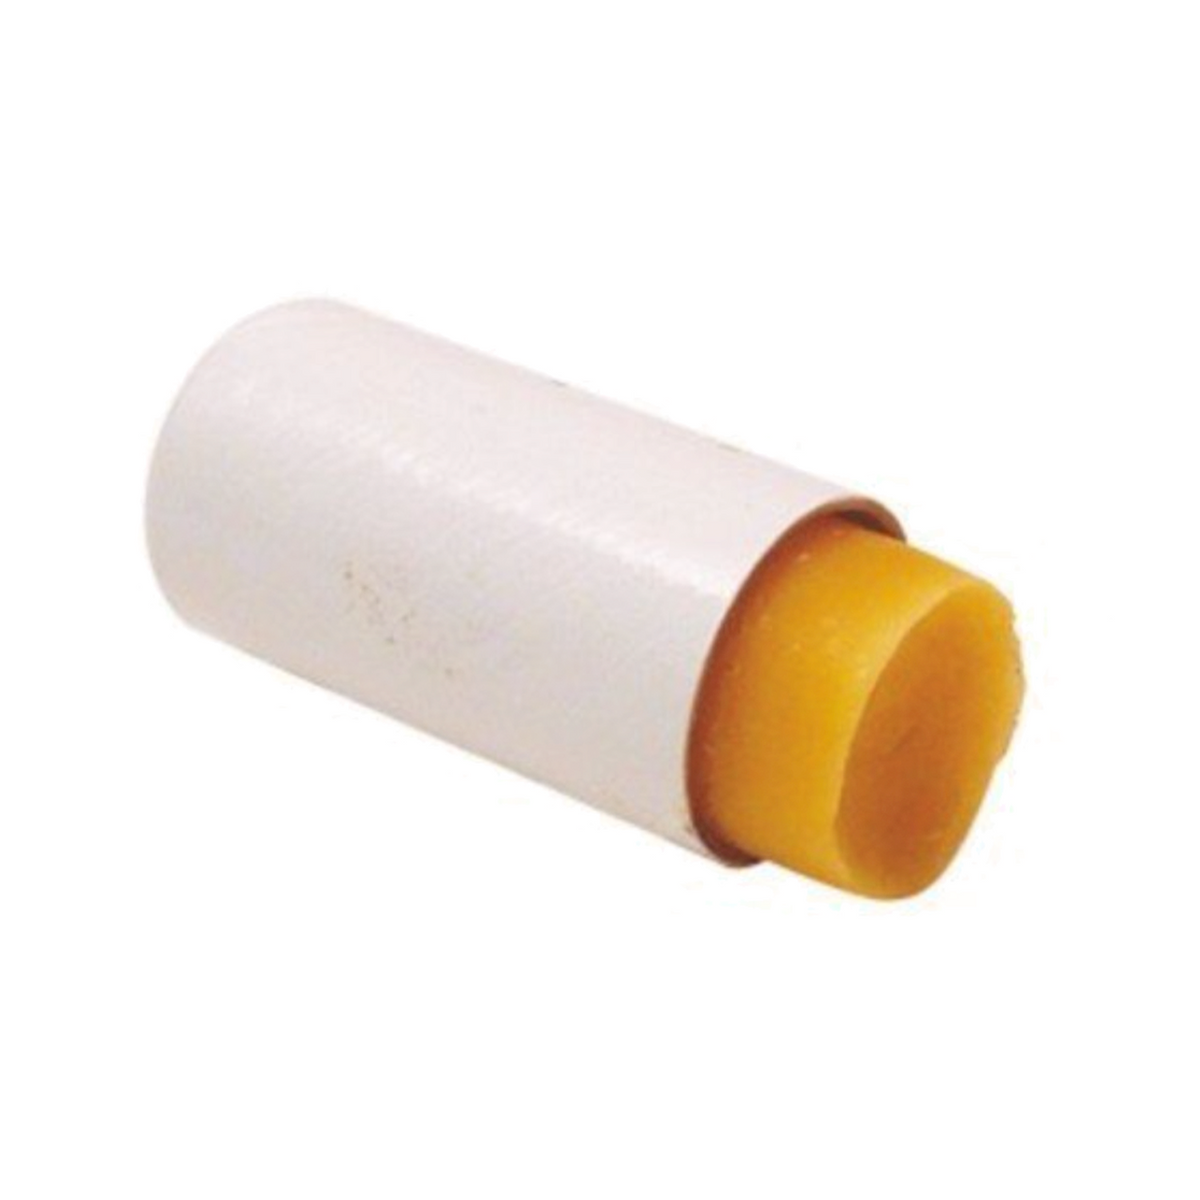 Black Swamp - Beeswax Thumb Roll Compound-Percussion Accessories-Black Swamp-Music Elements